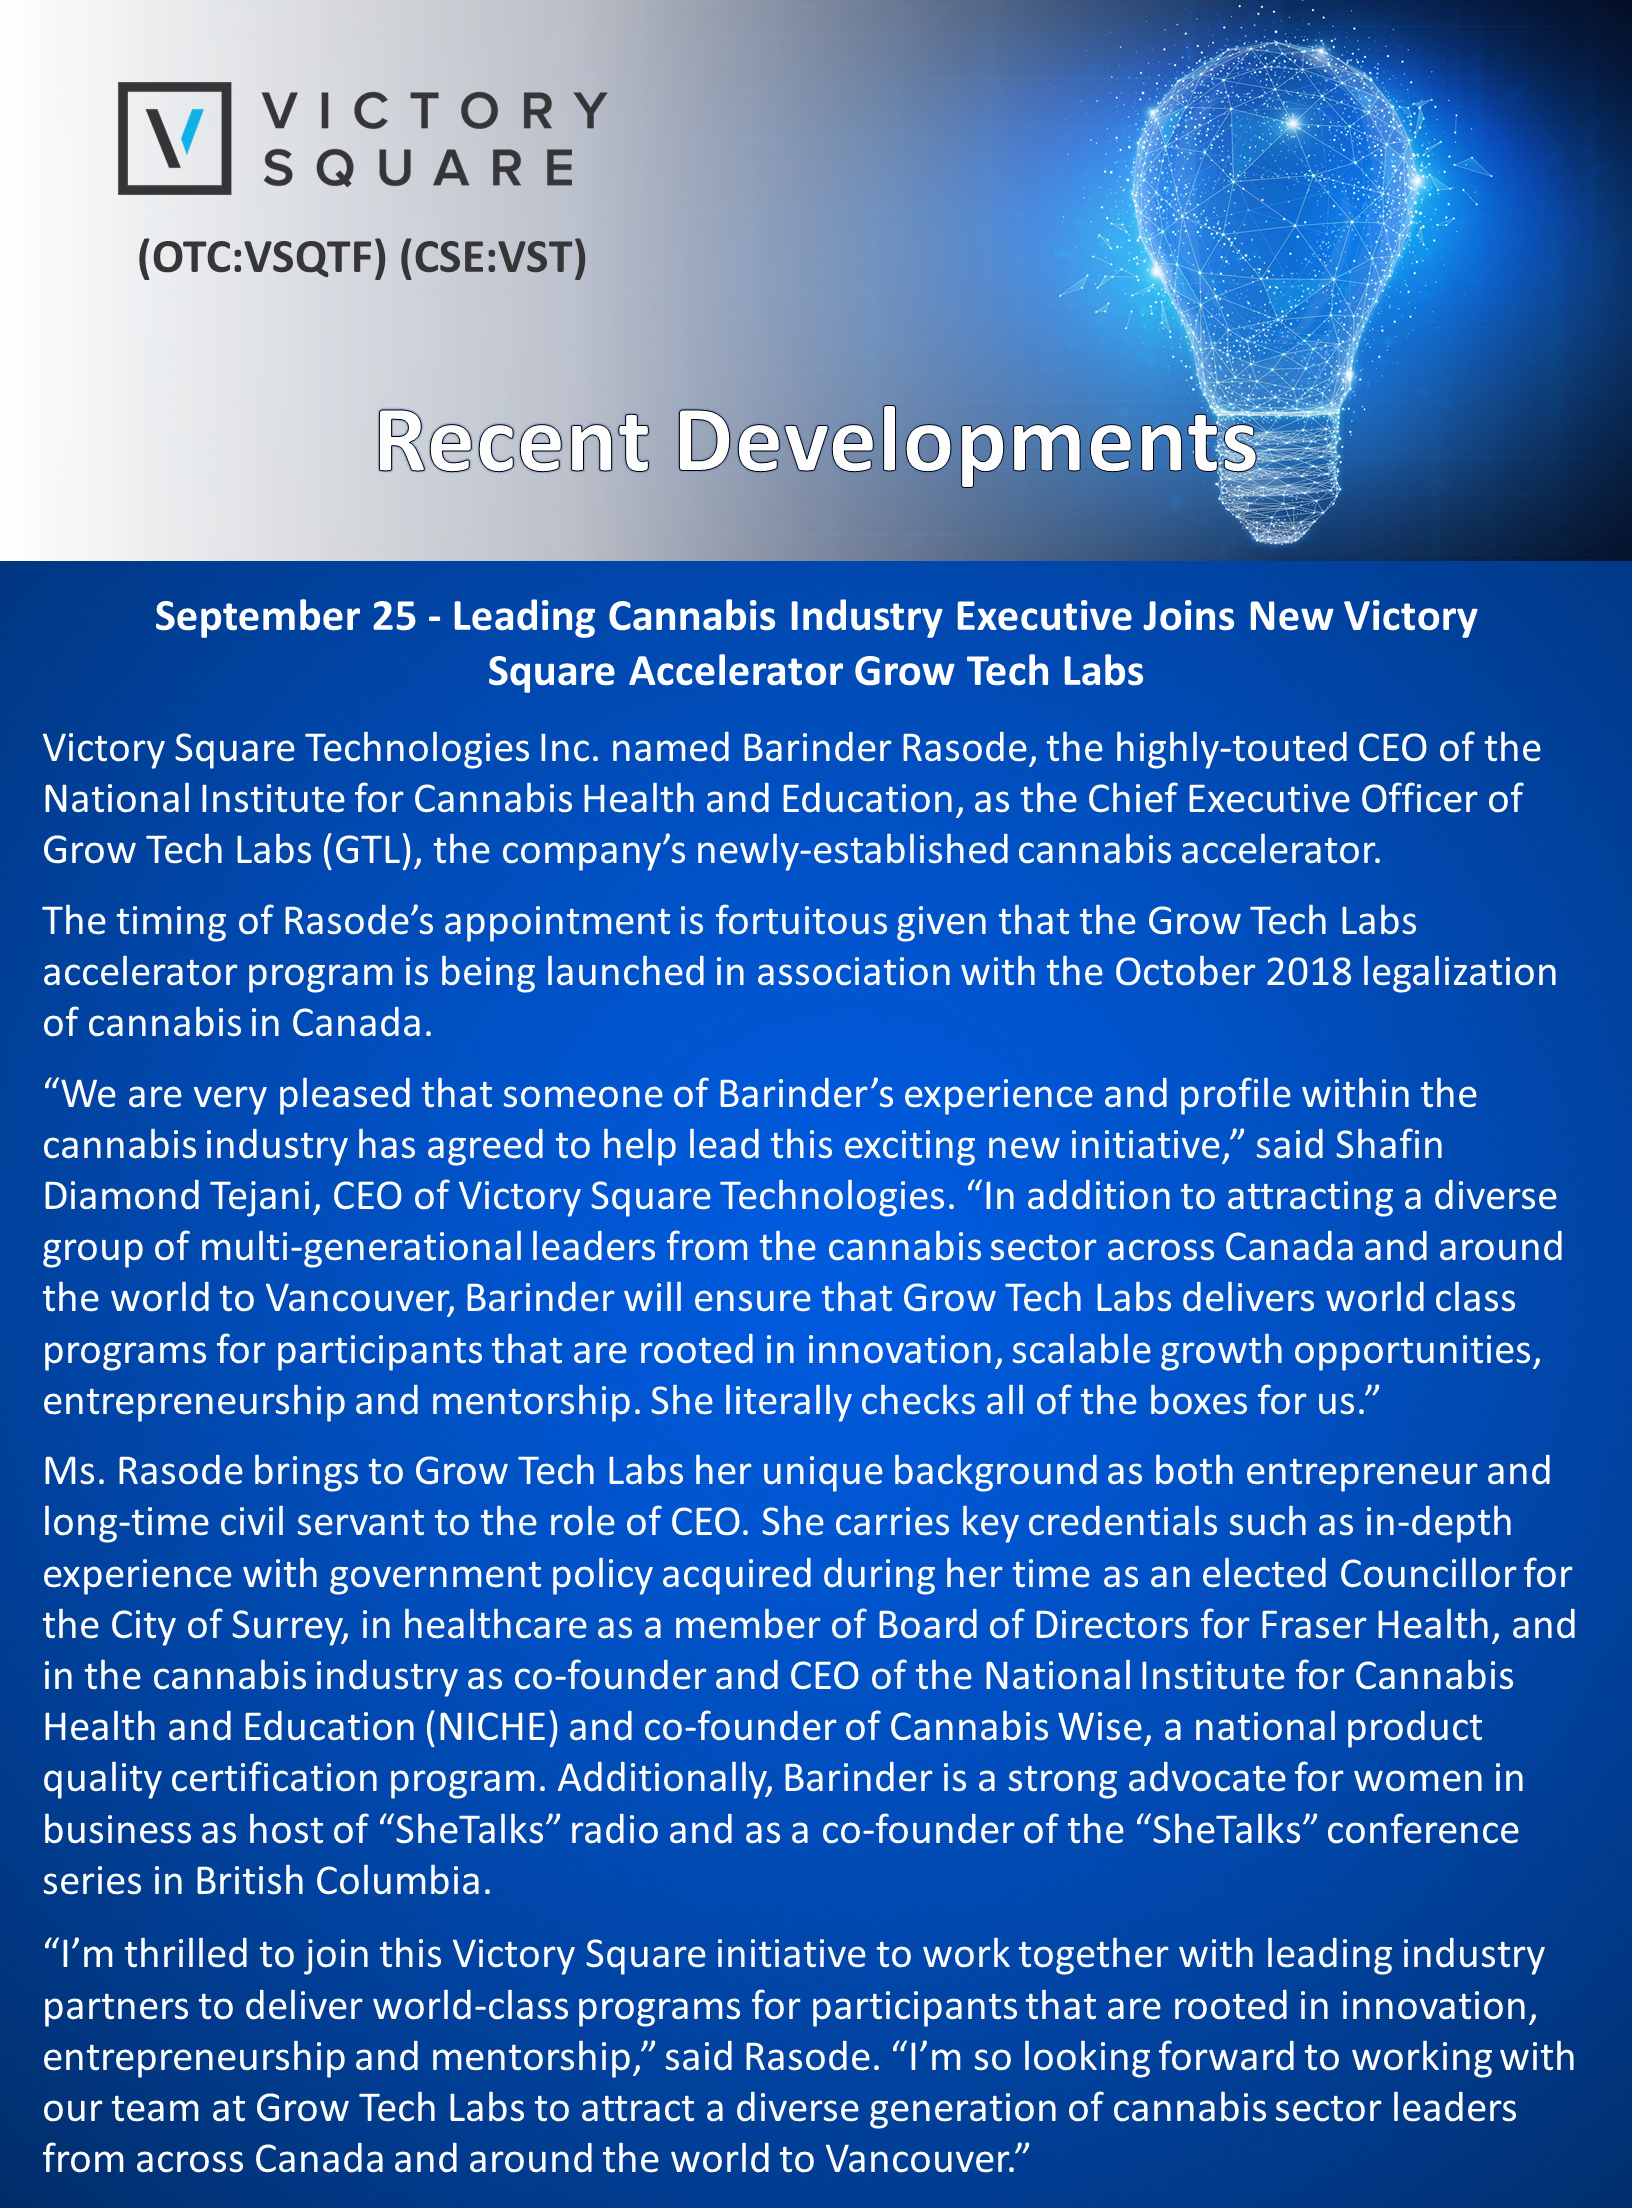 The Continued Buzz Surrounding Victory Square Technologies Inc  (OTC